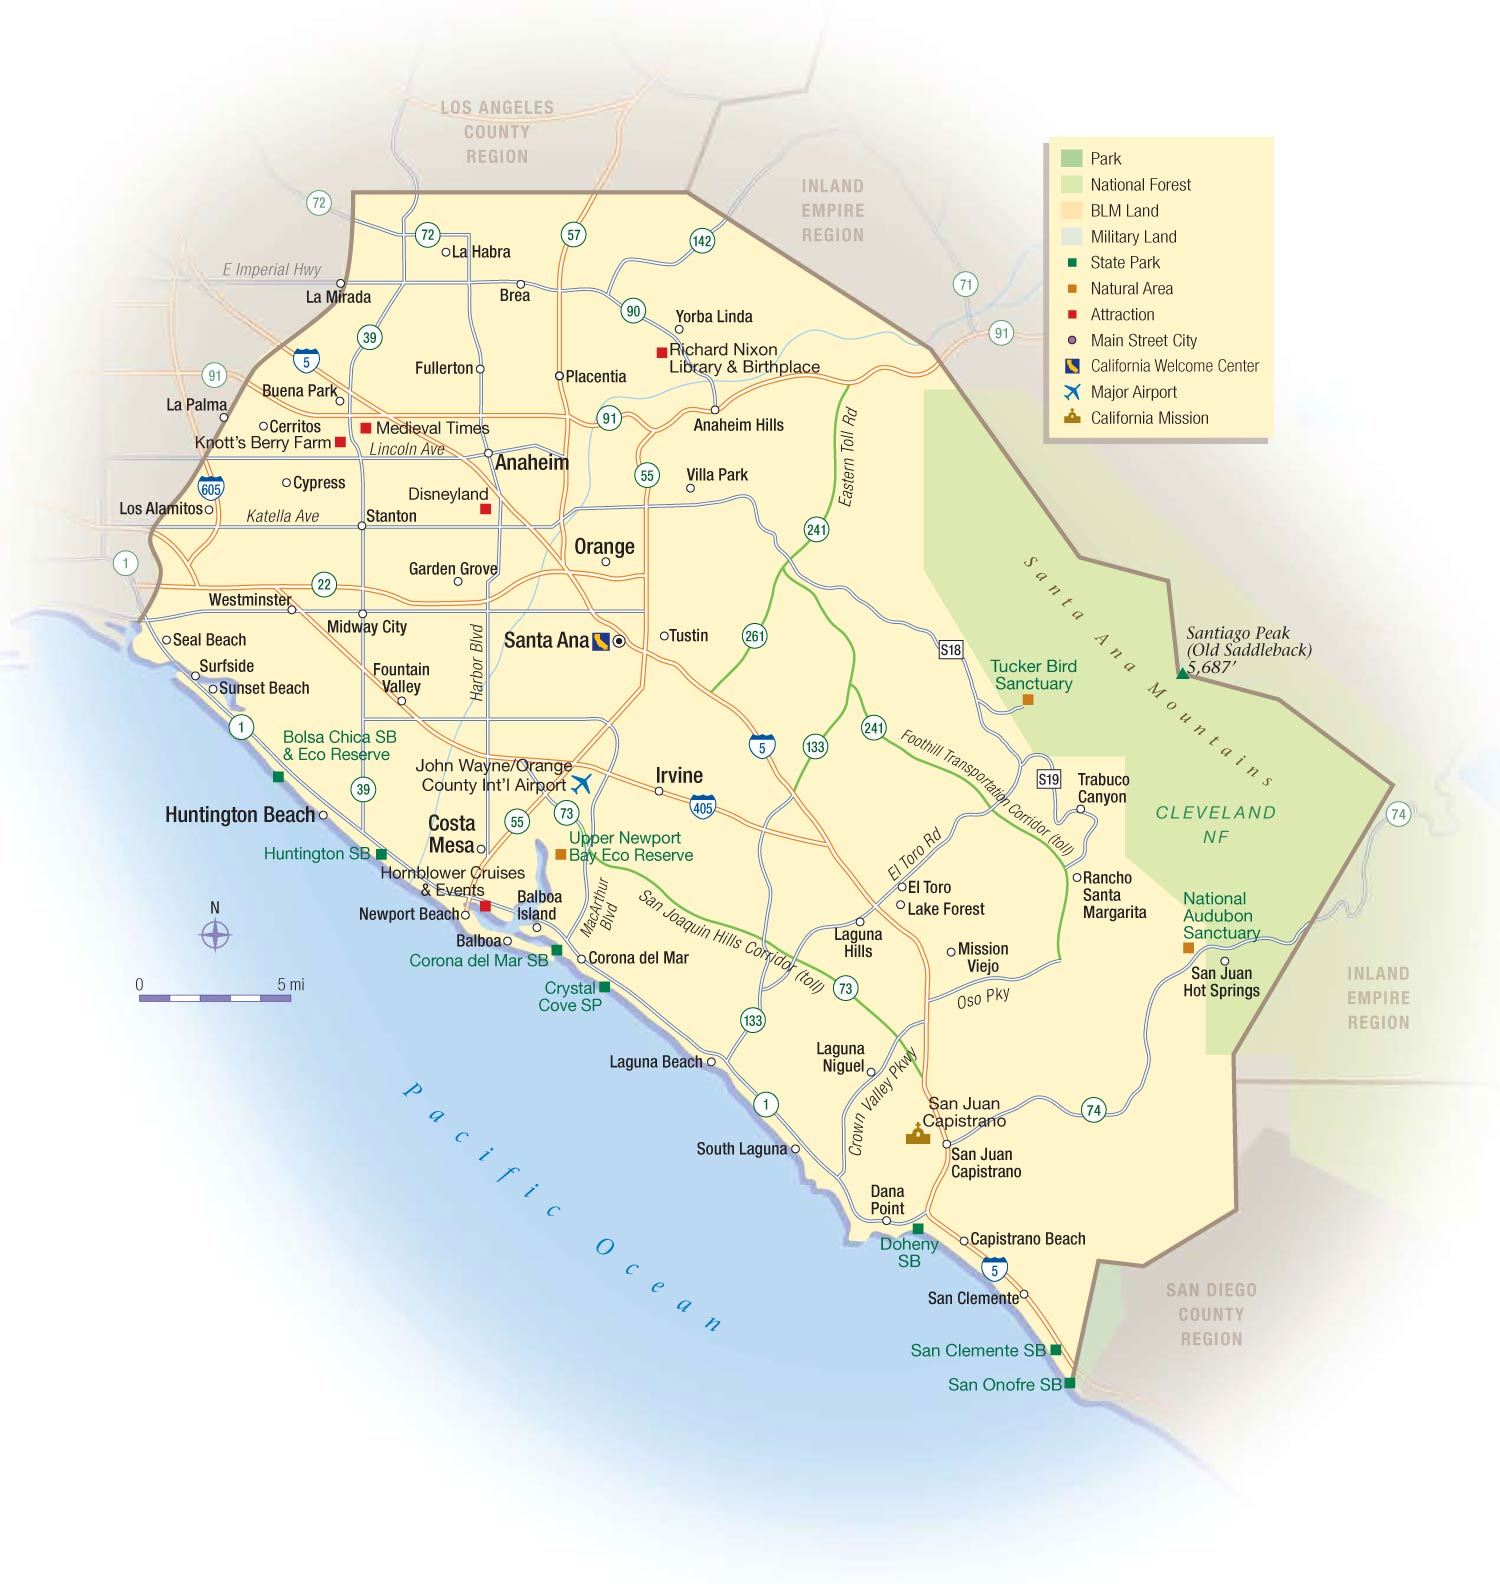 reo service area | newport beach homes for sale, property search